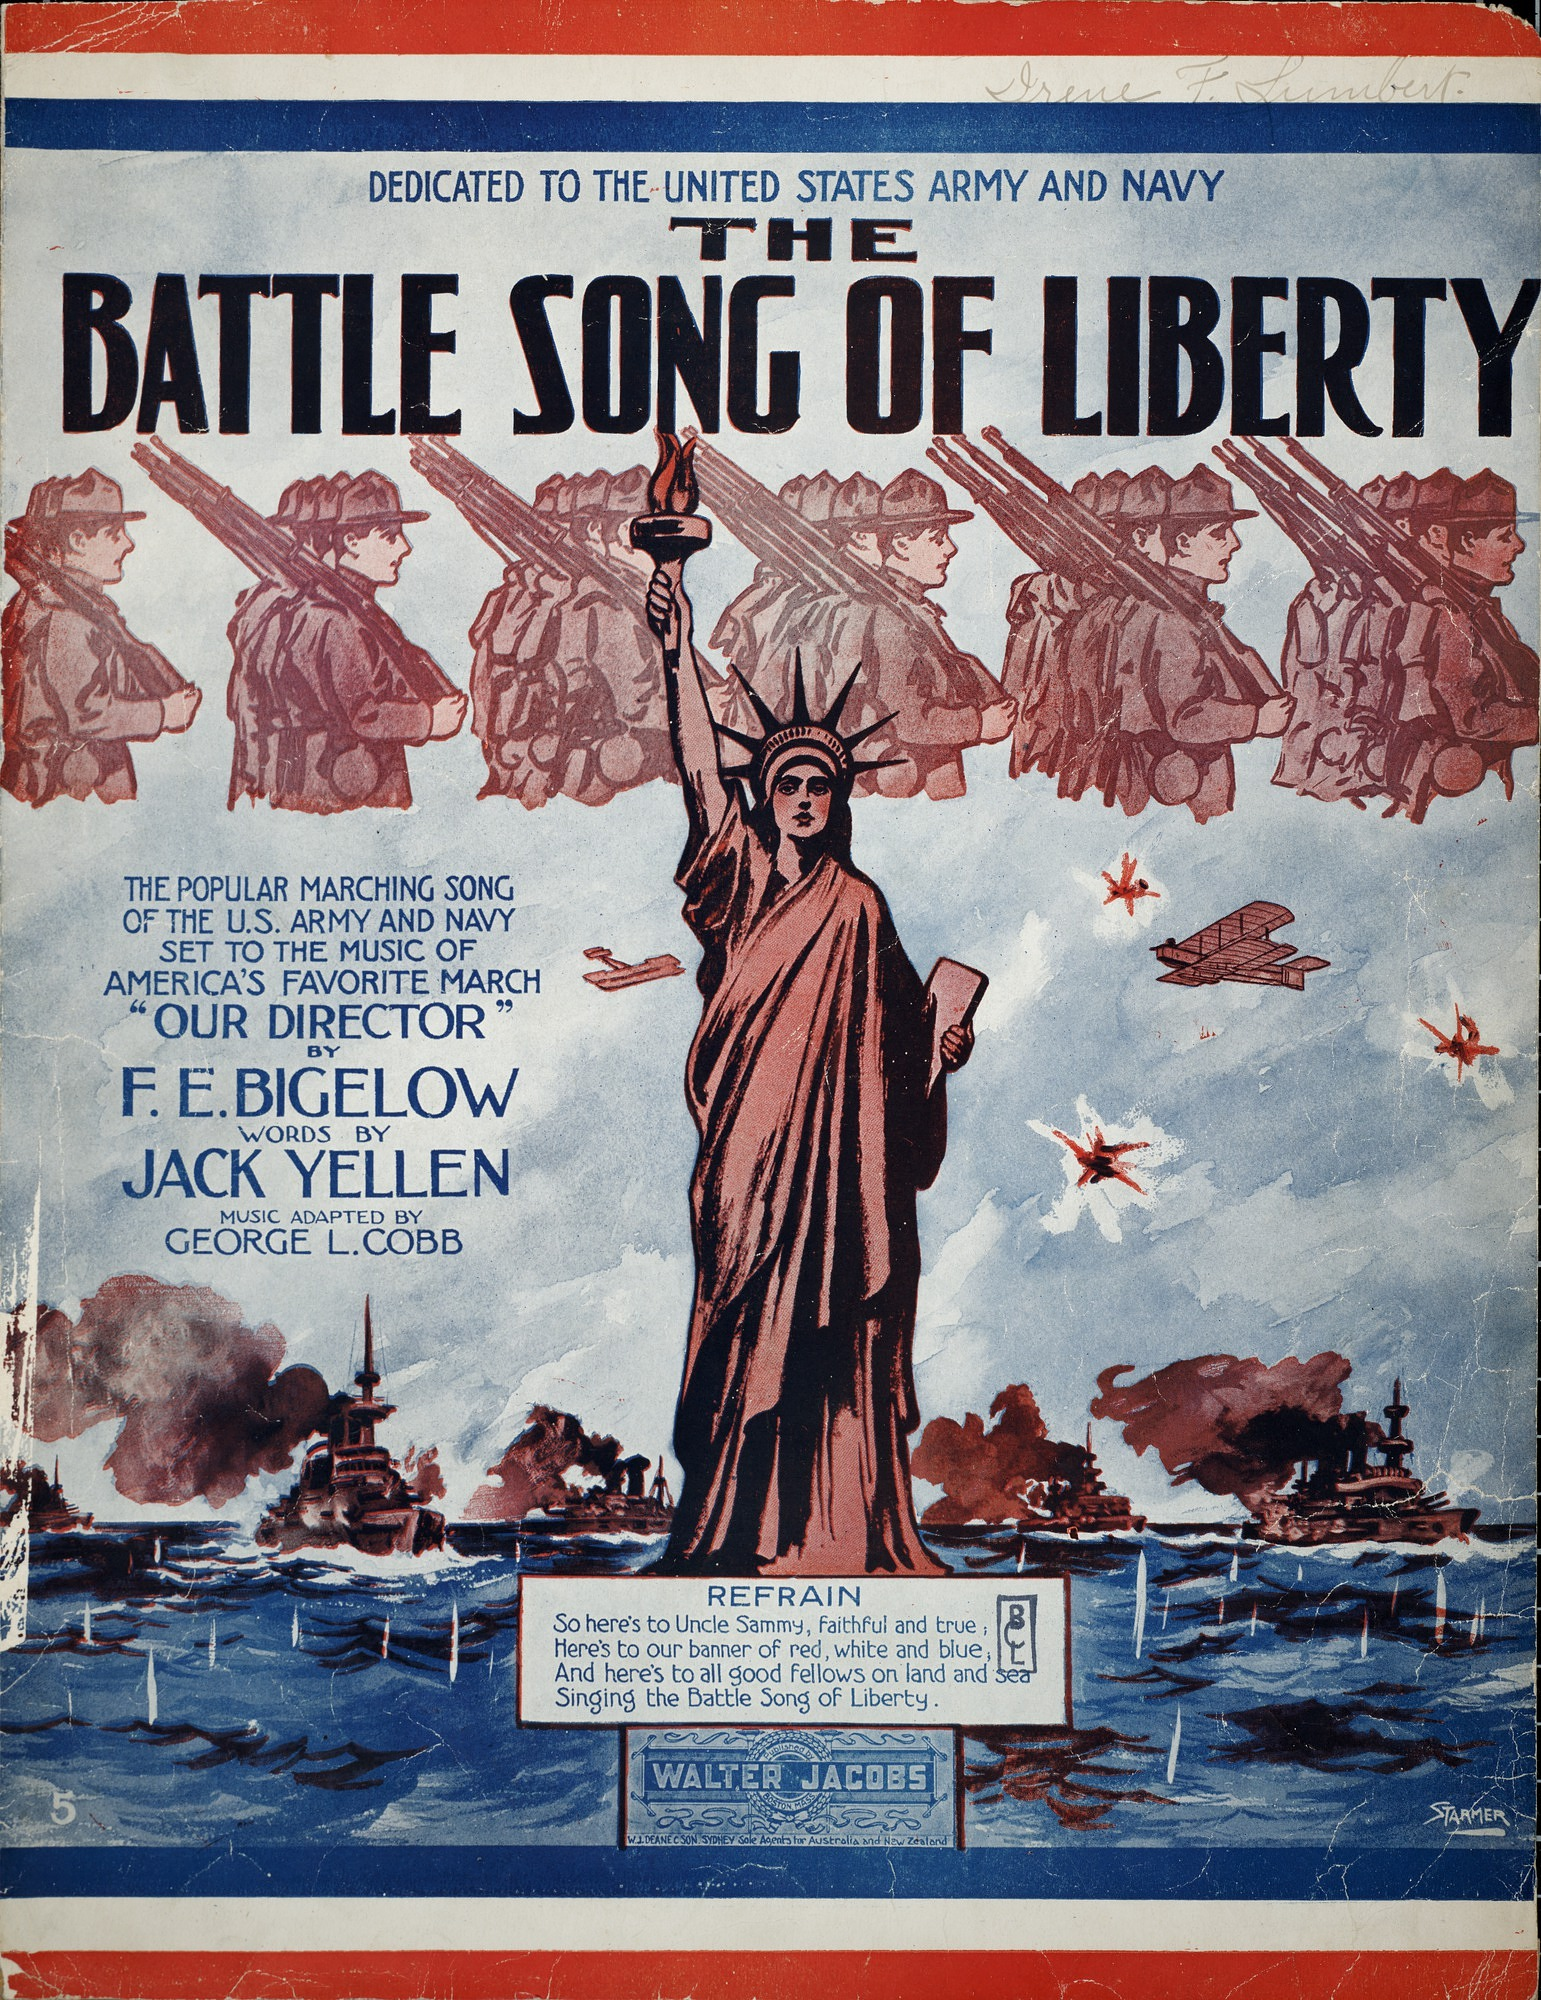 images for The battle song of liberty / words by Jack Yellen ; music adapted by George L. Cobb